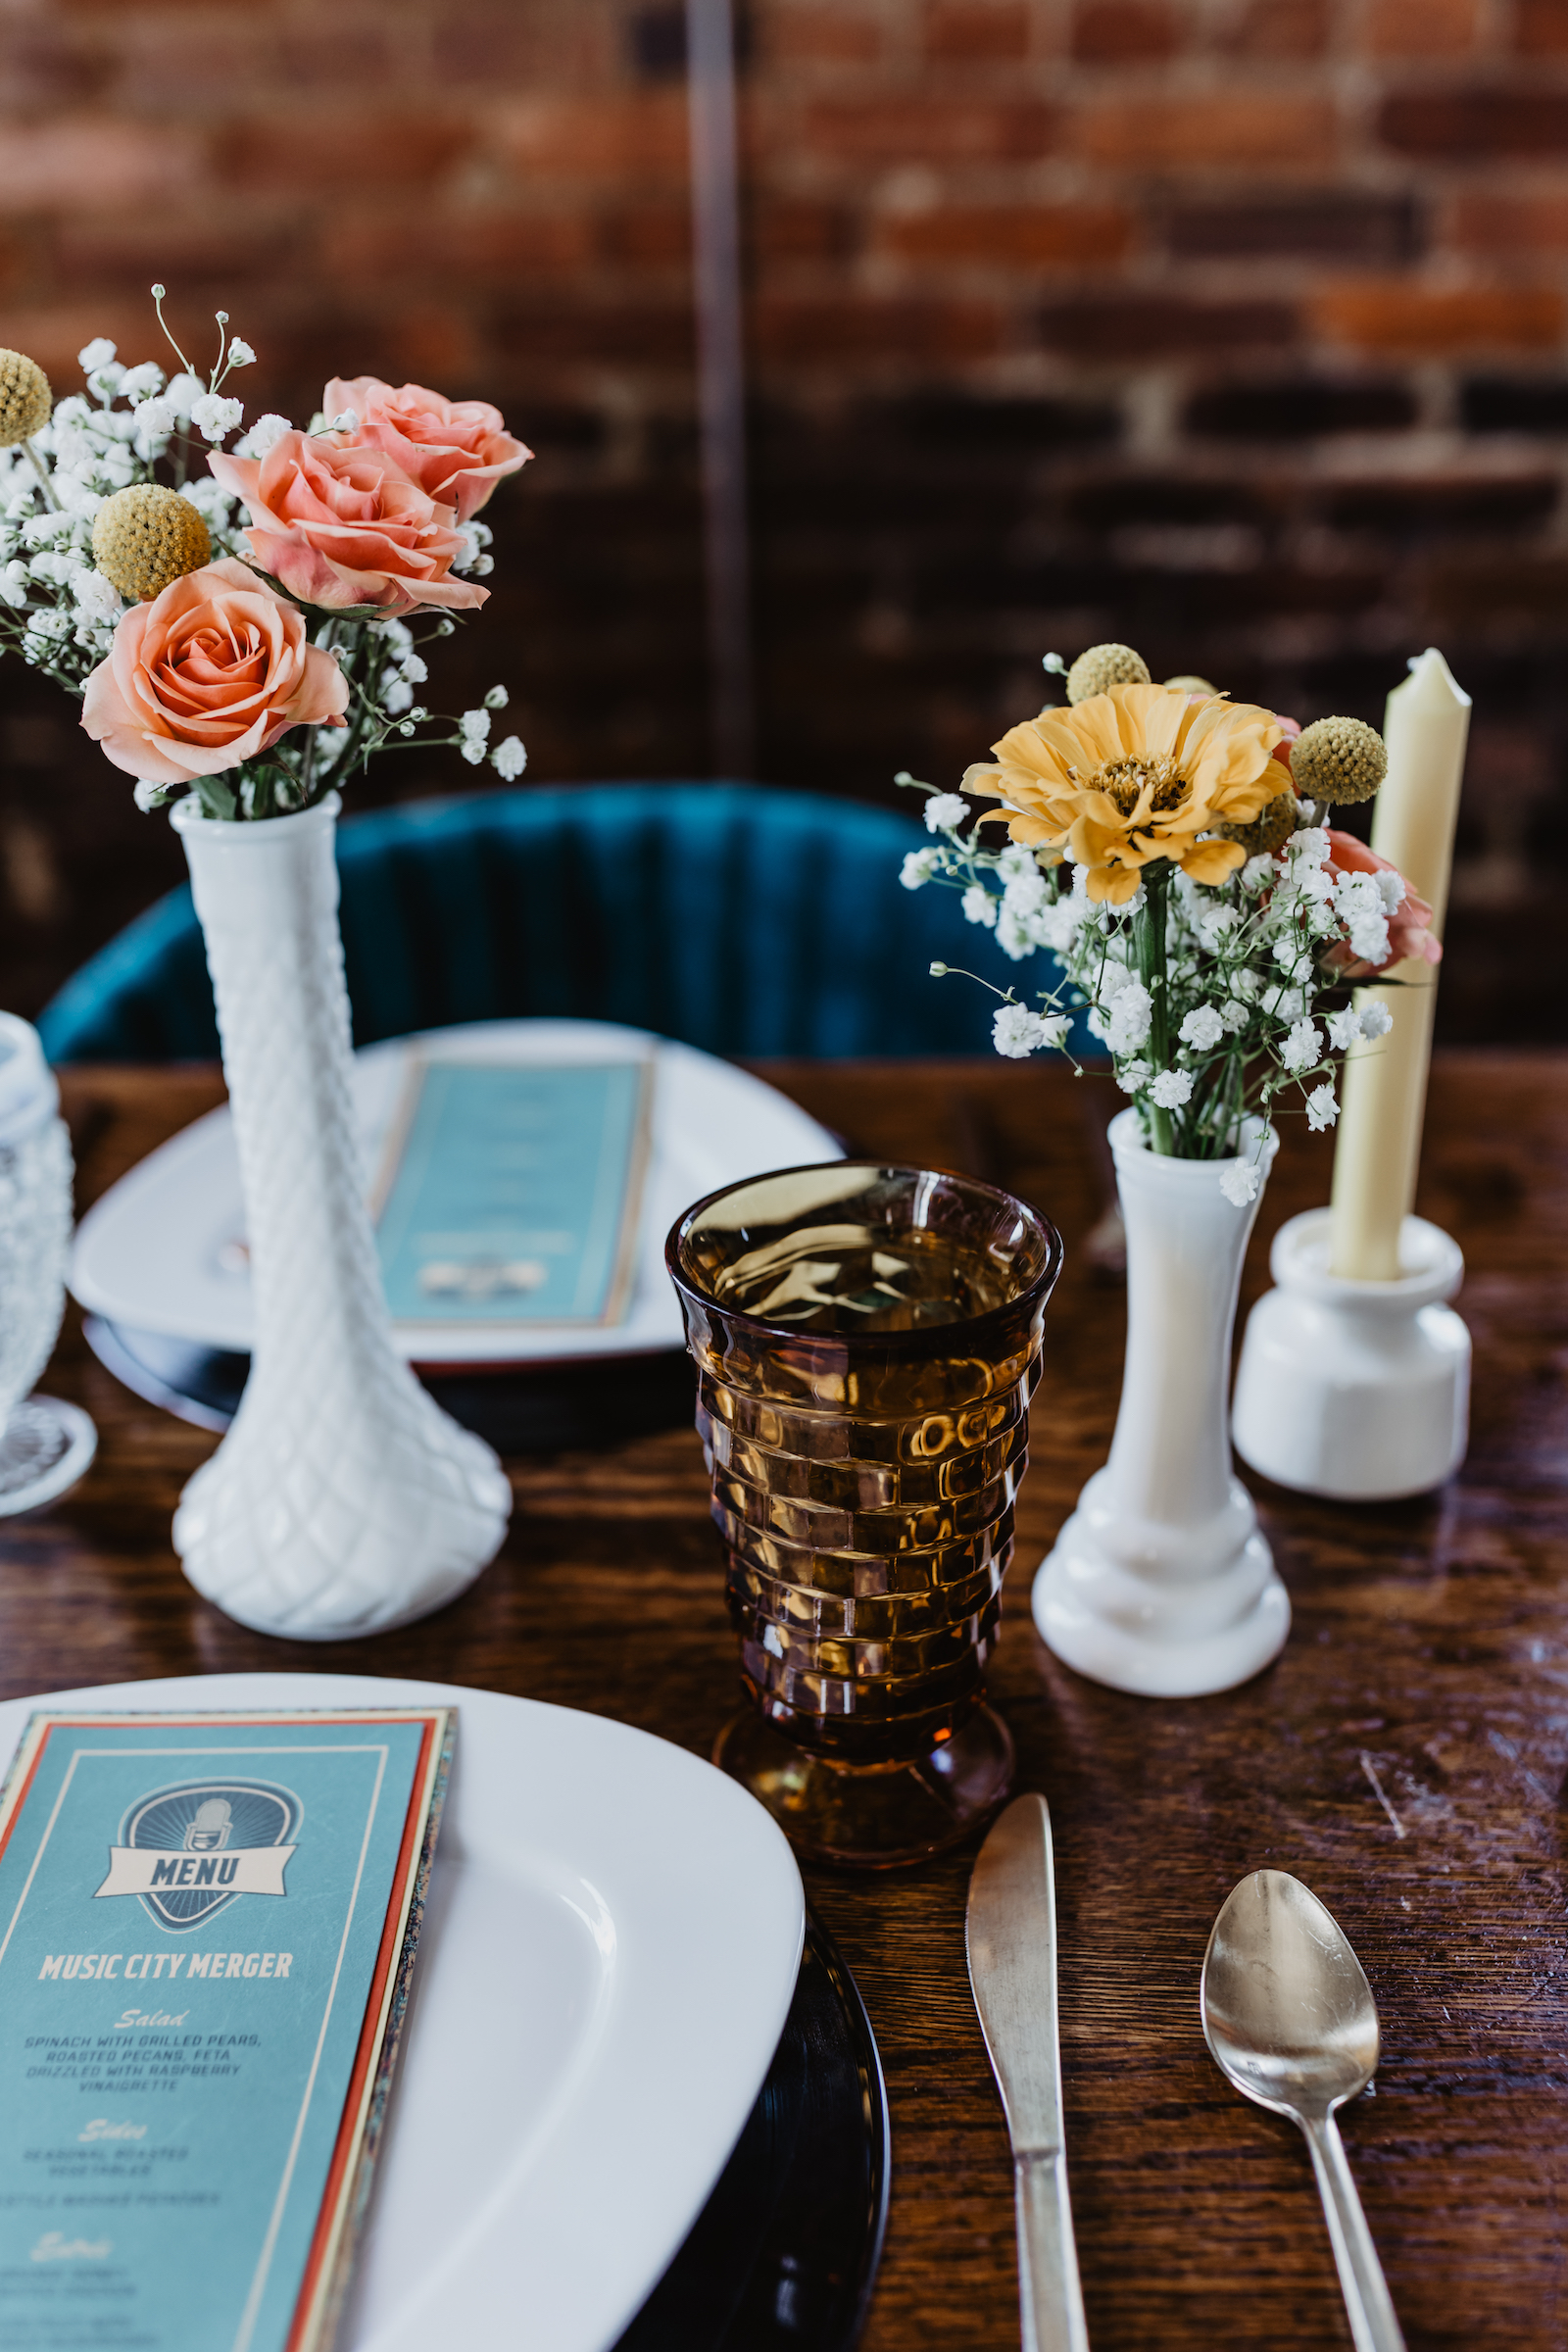 Vintage wedding goblets for Music City Merger styled shoot featured on Nashville Bride Guide